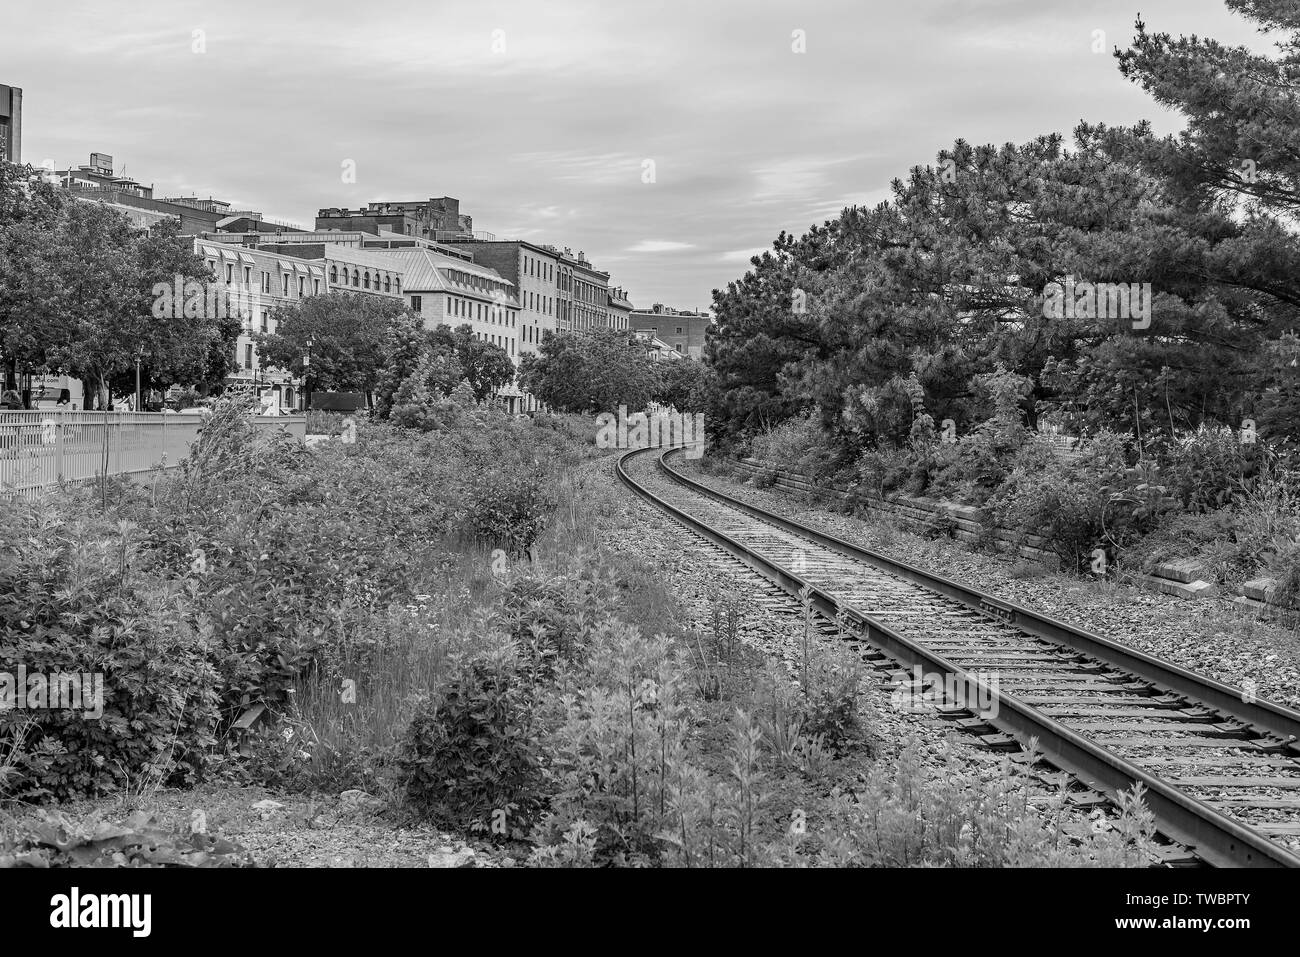 Views of railway tracks in Old Montreal. Stock Photo